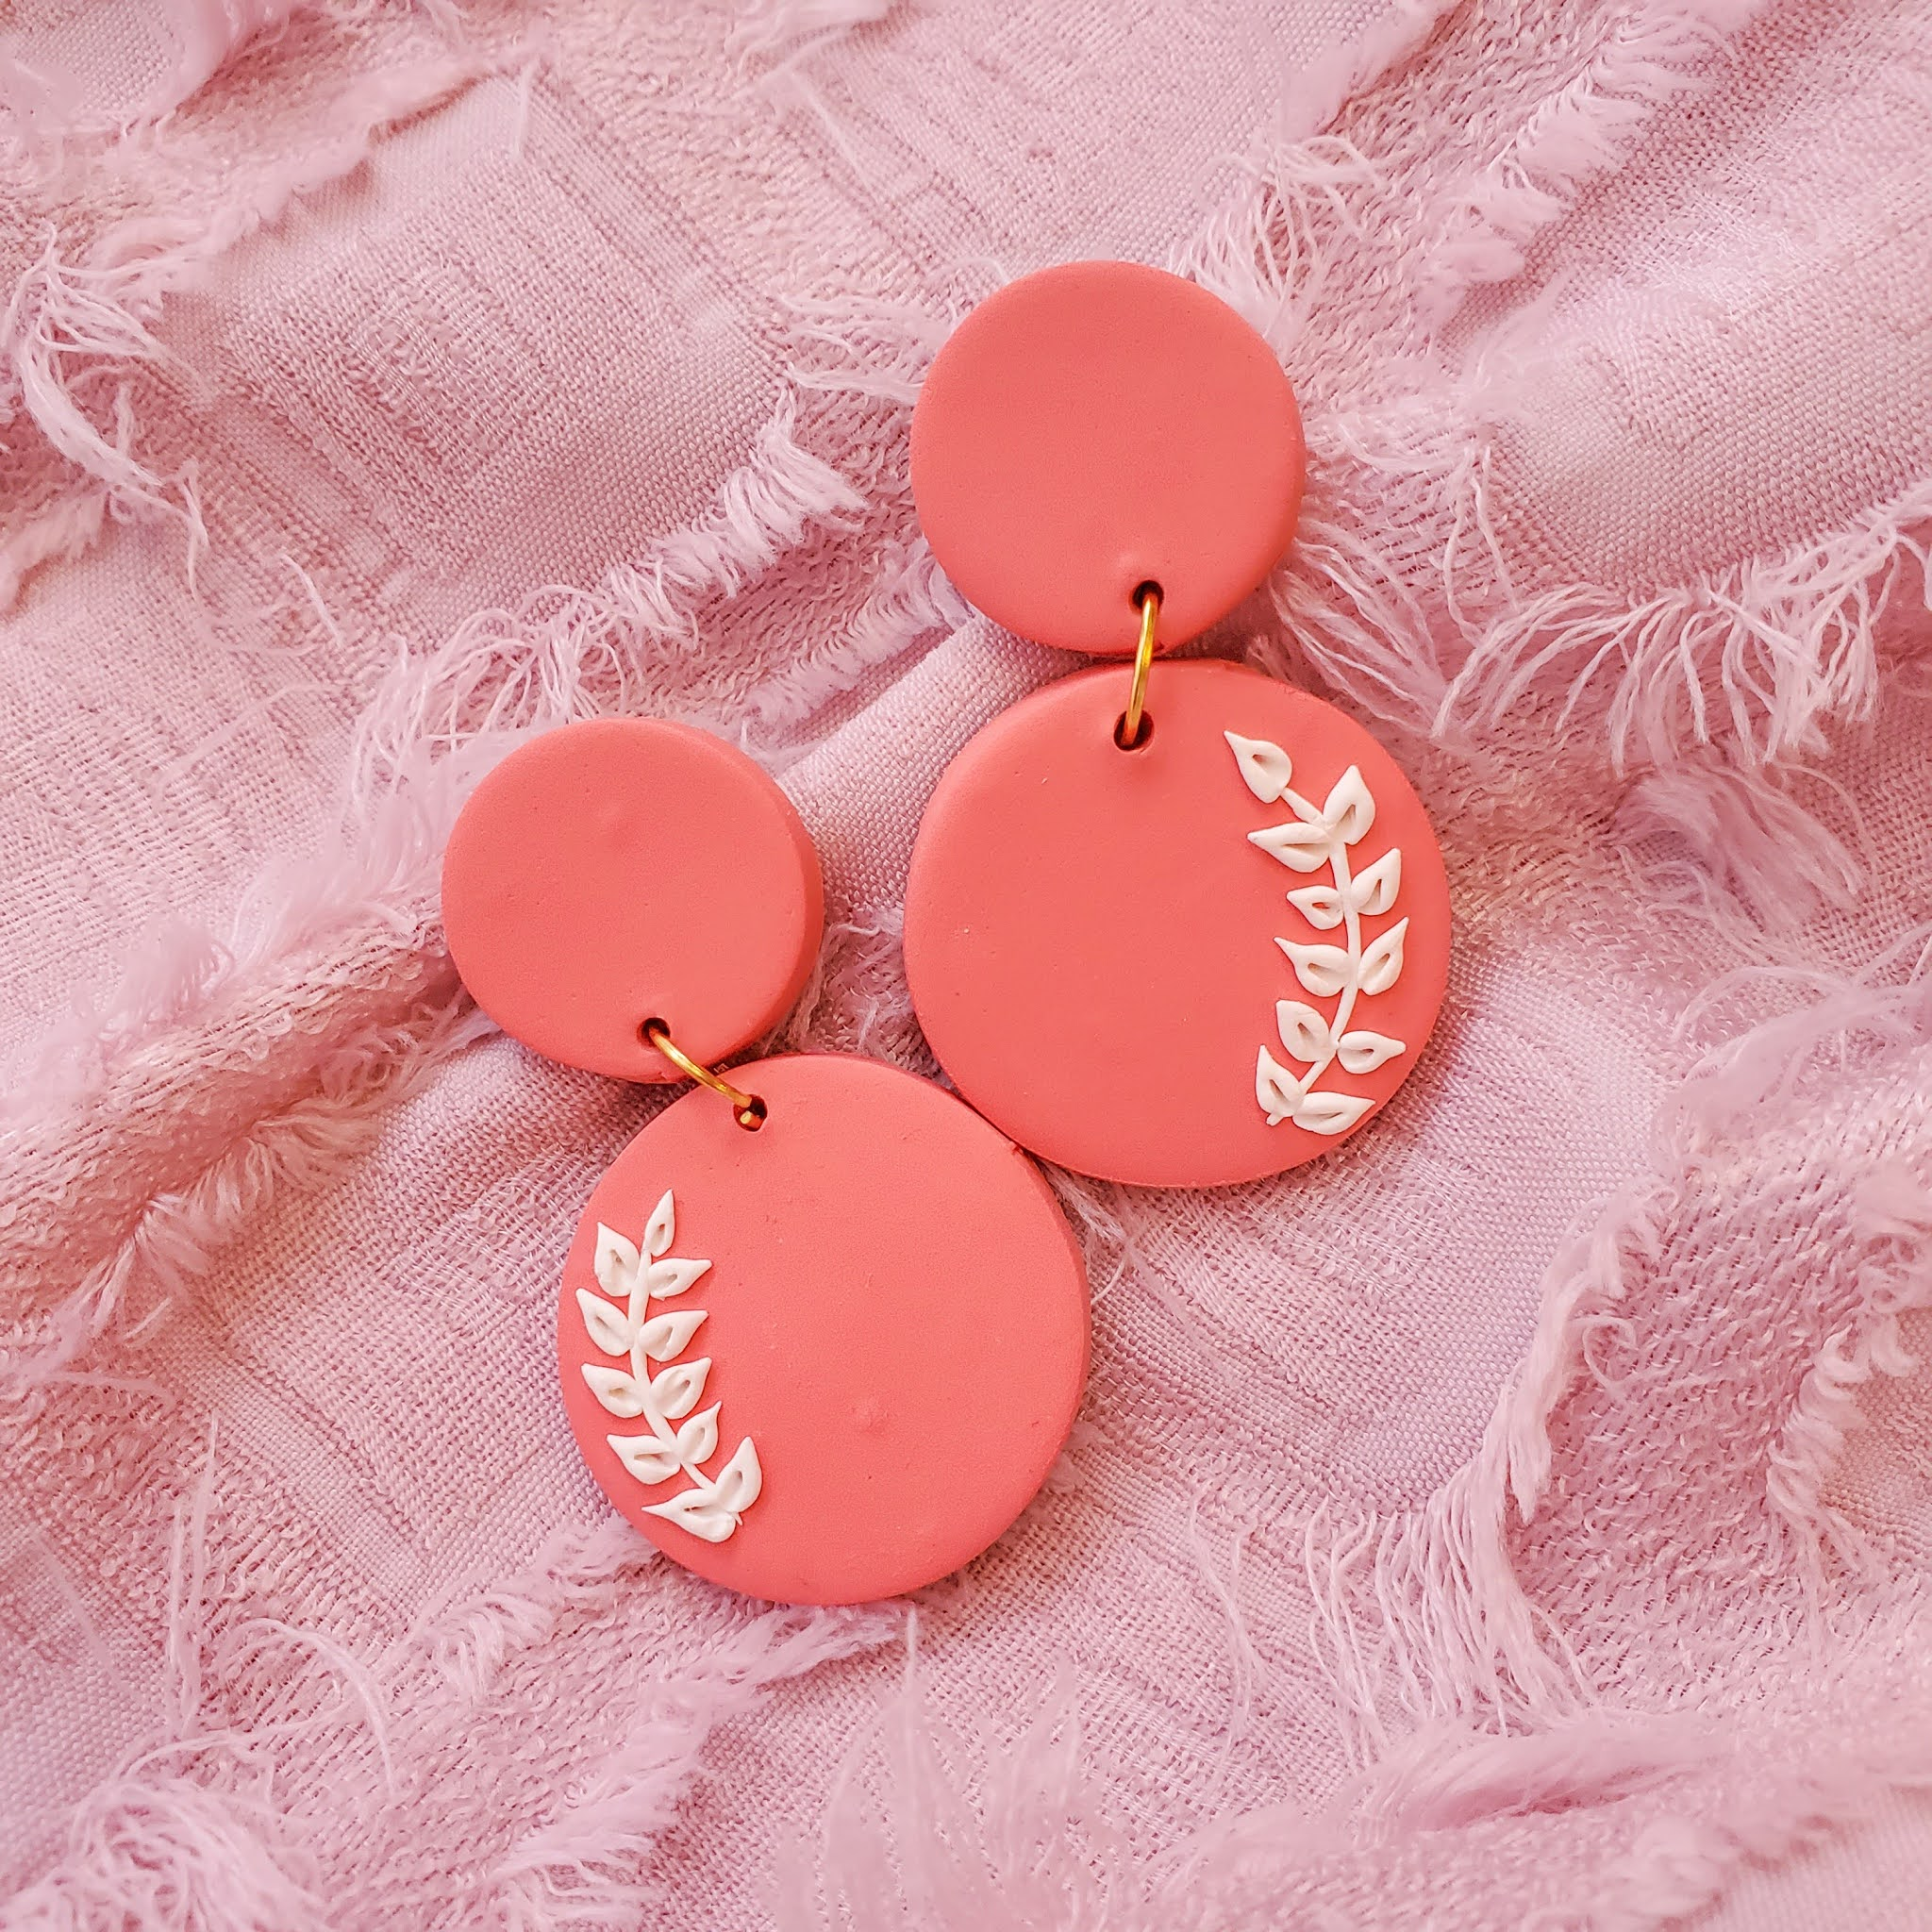 Handmade polymer clay statement earrings